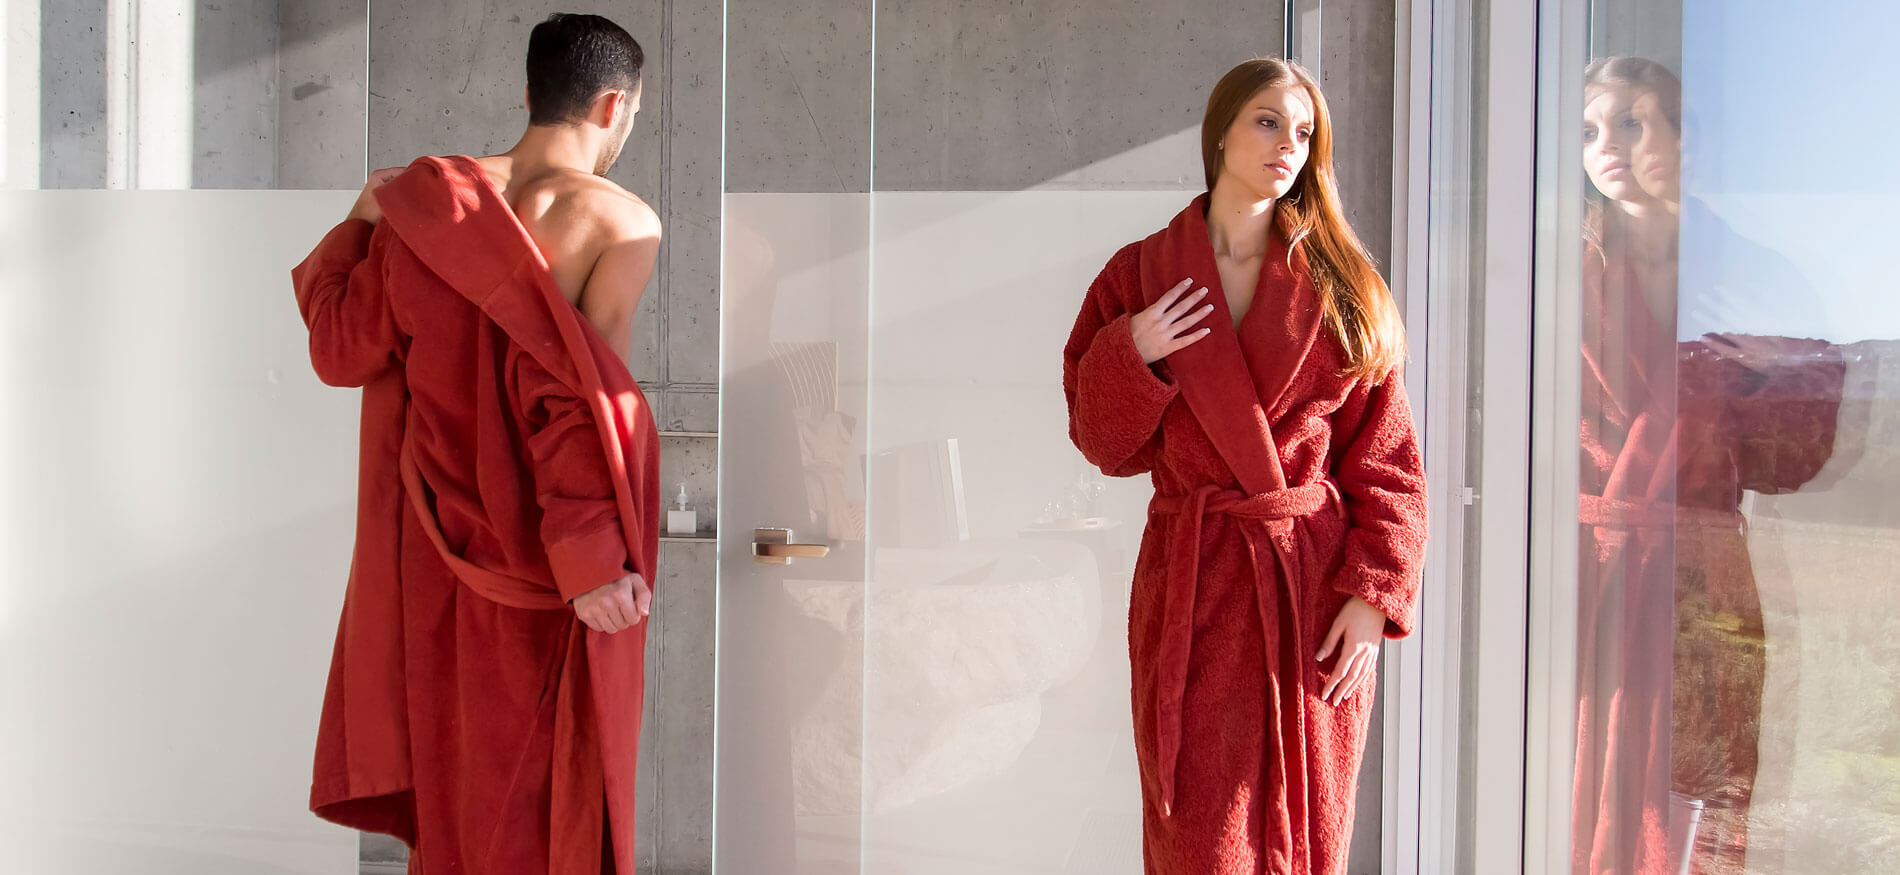 Abyss & Habidecor Bathrobes from aegptic cotton in exclusive design and workmanship